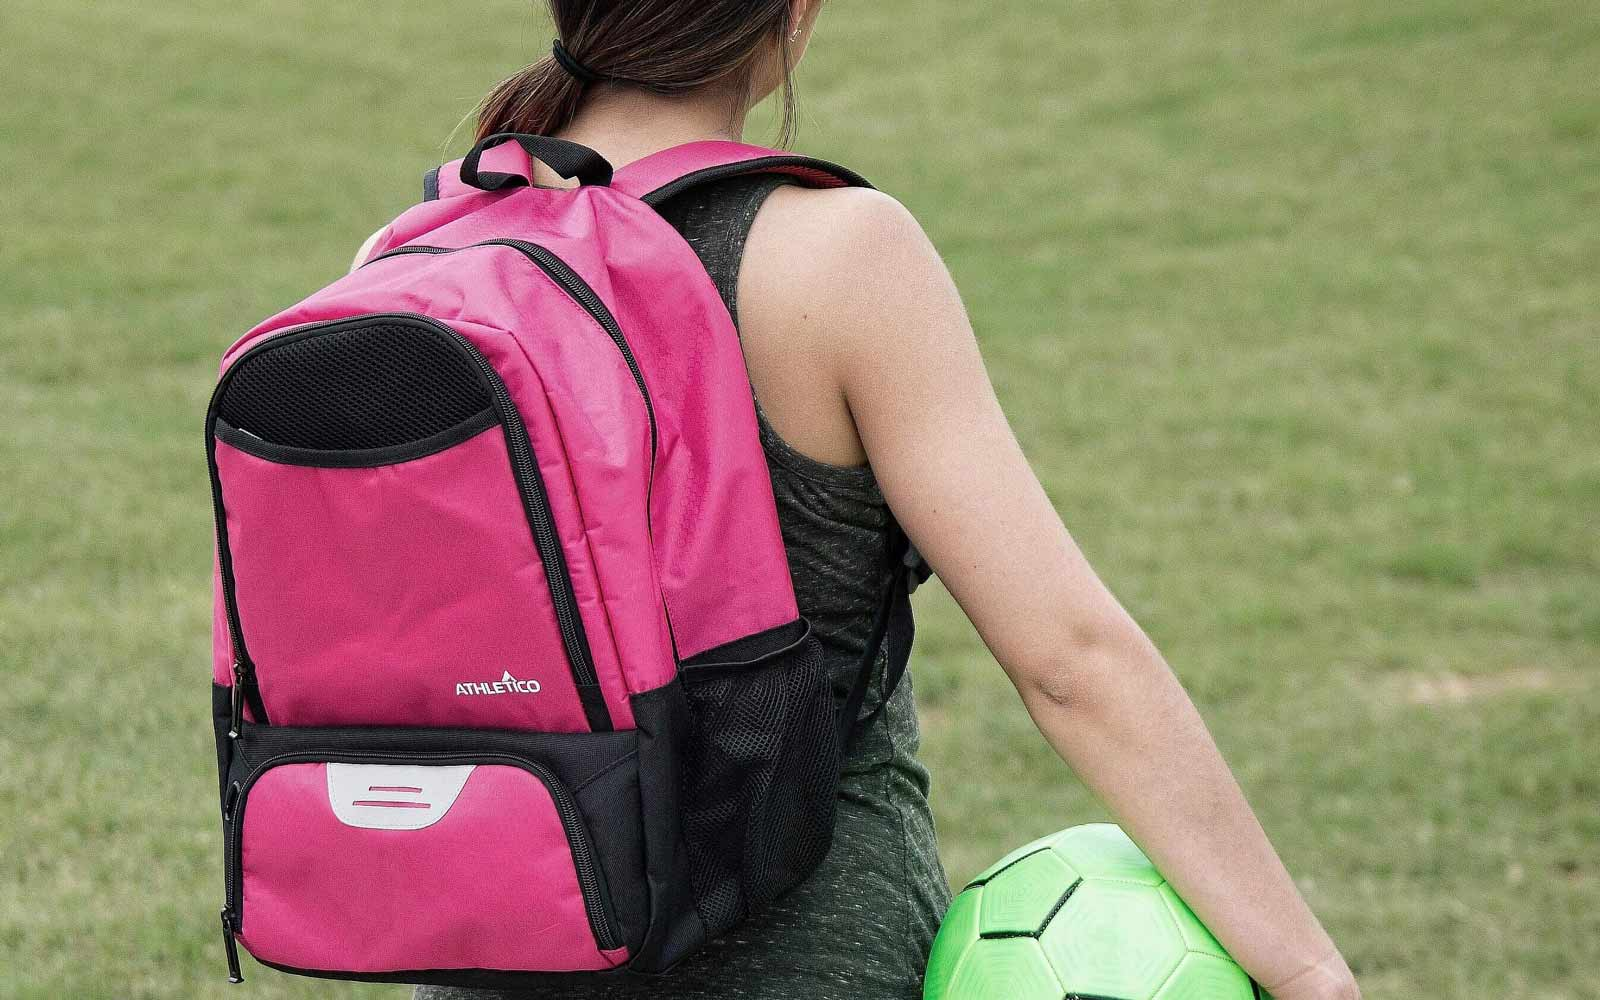 Youth Soccer Backpack